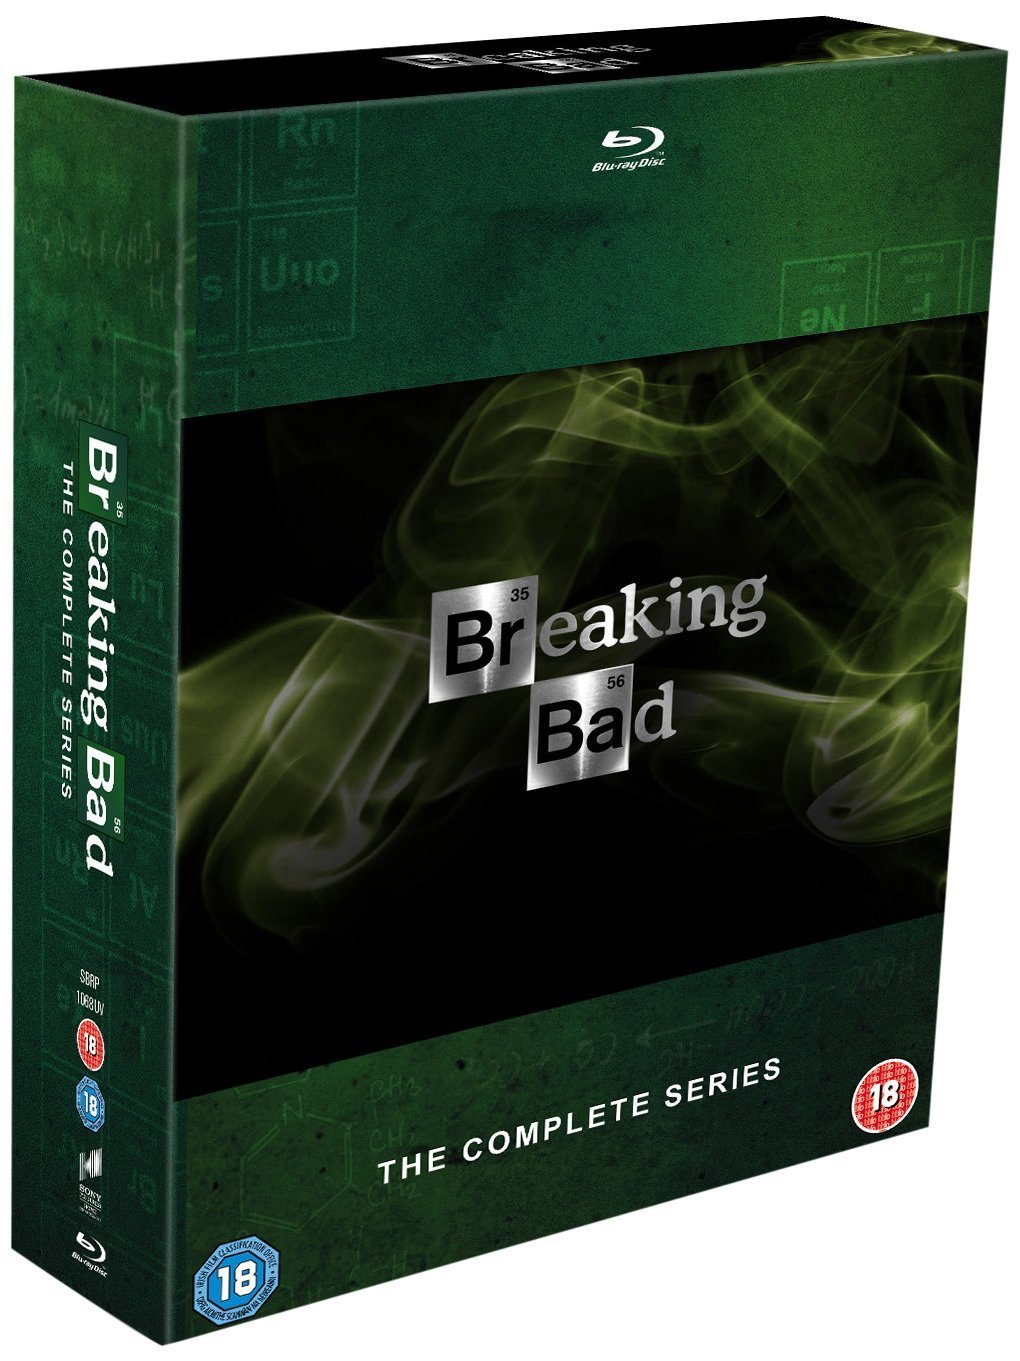 breaking bad the complete series box set dvd blu ray disc television series hd 799491431560 ebay. Black Bedroom Furniture Sets. Home Design Ideas